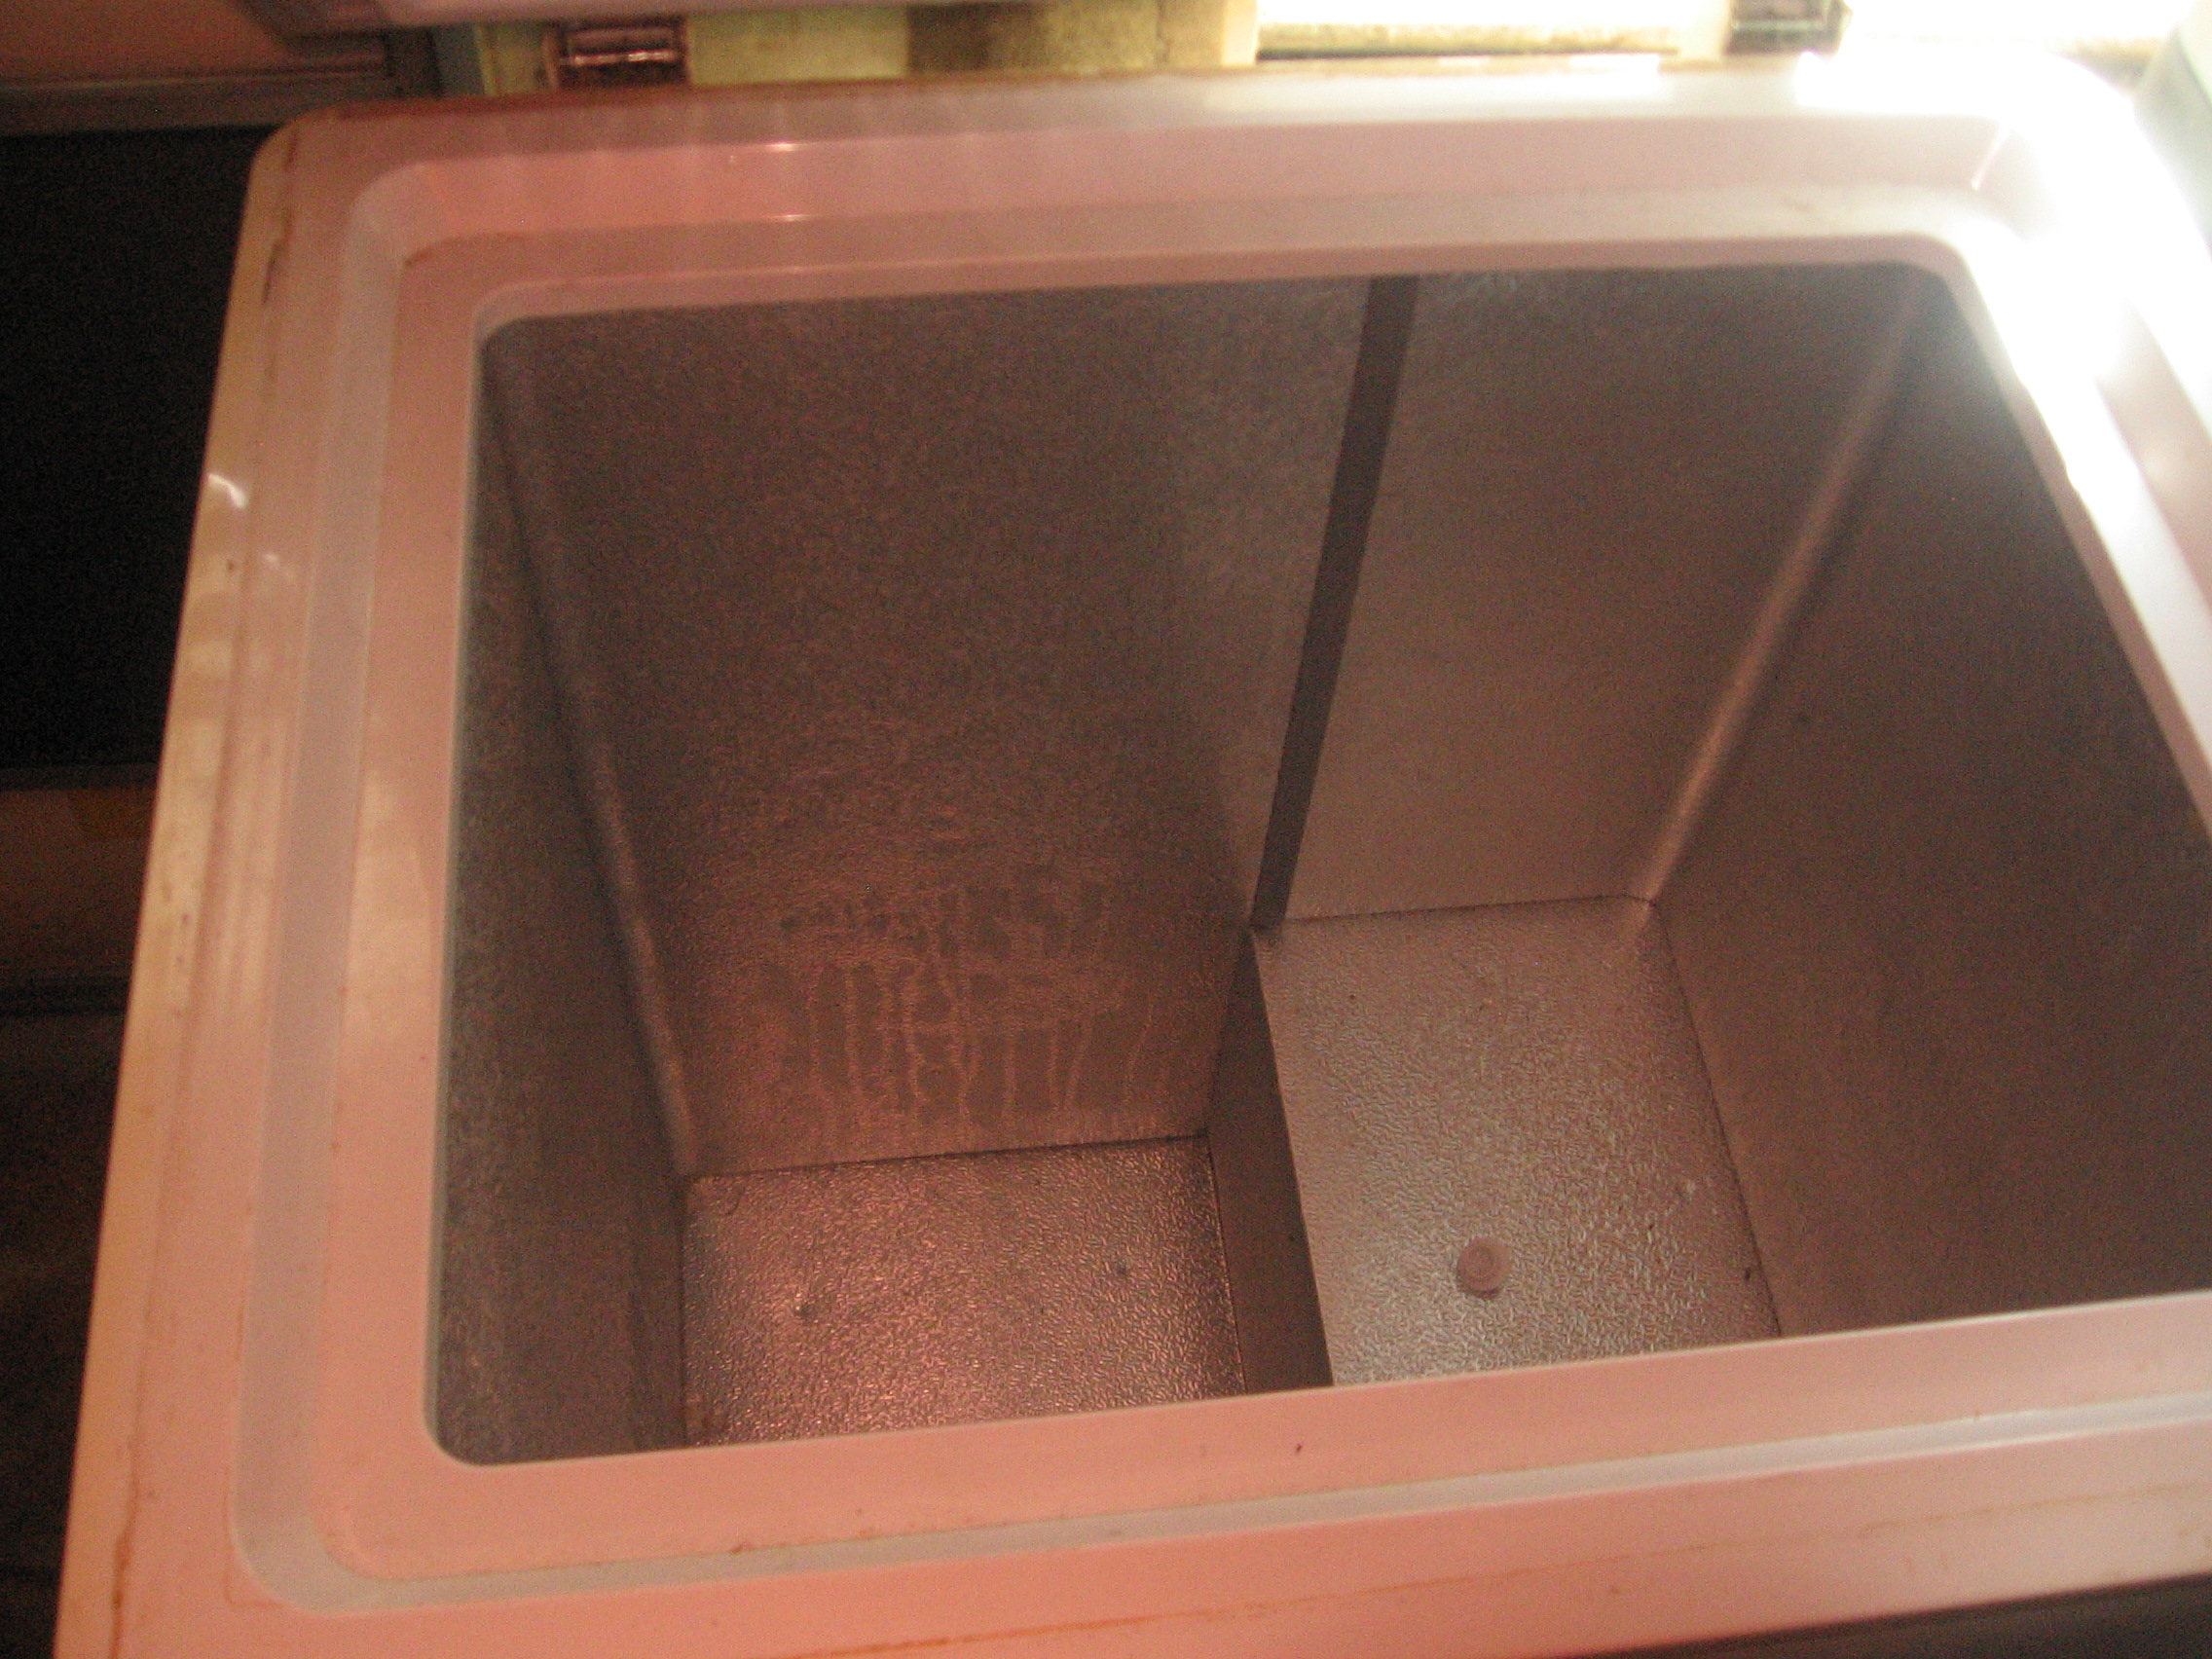 Danby chest freezer defrosted and empty #9D4B2E